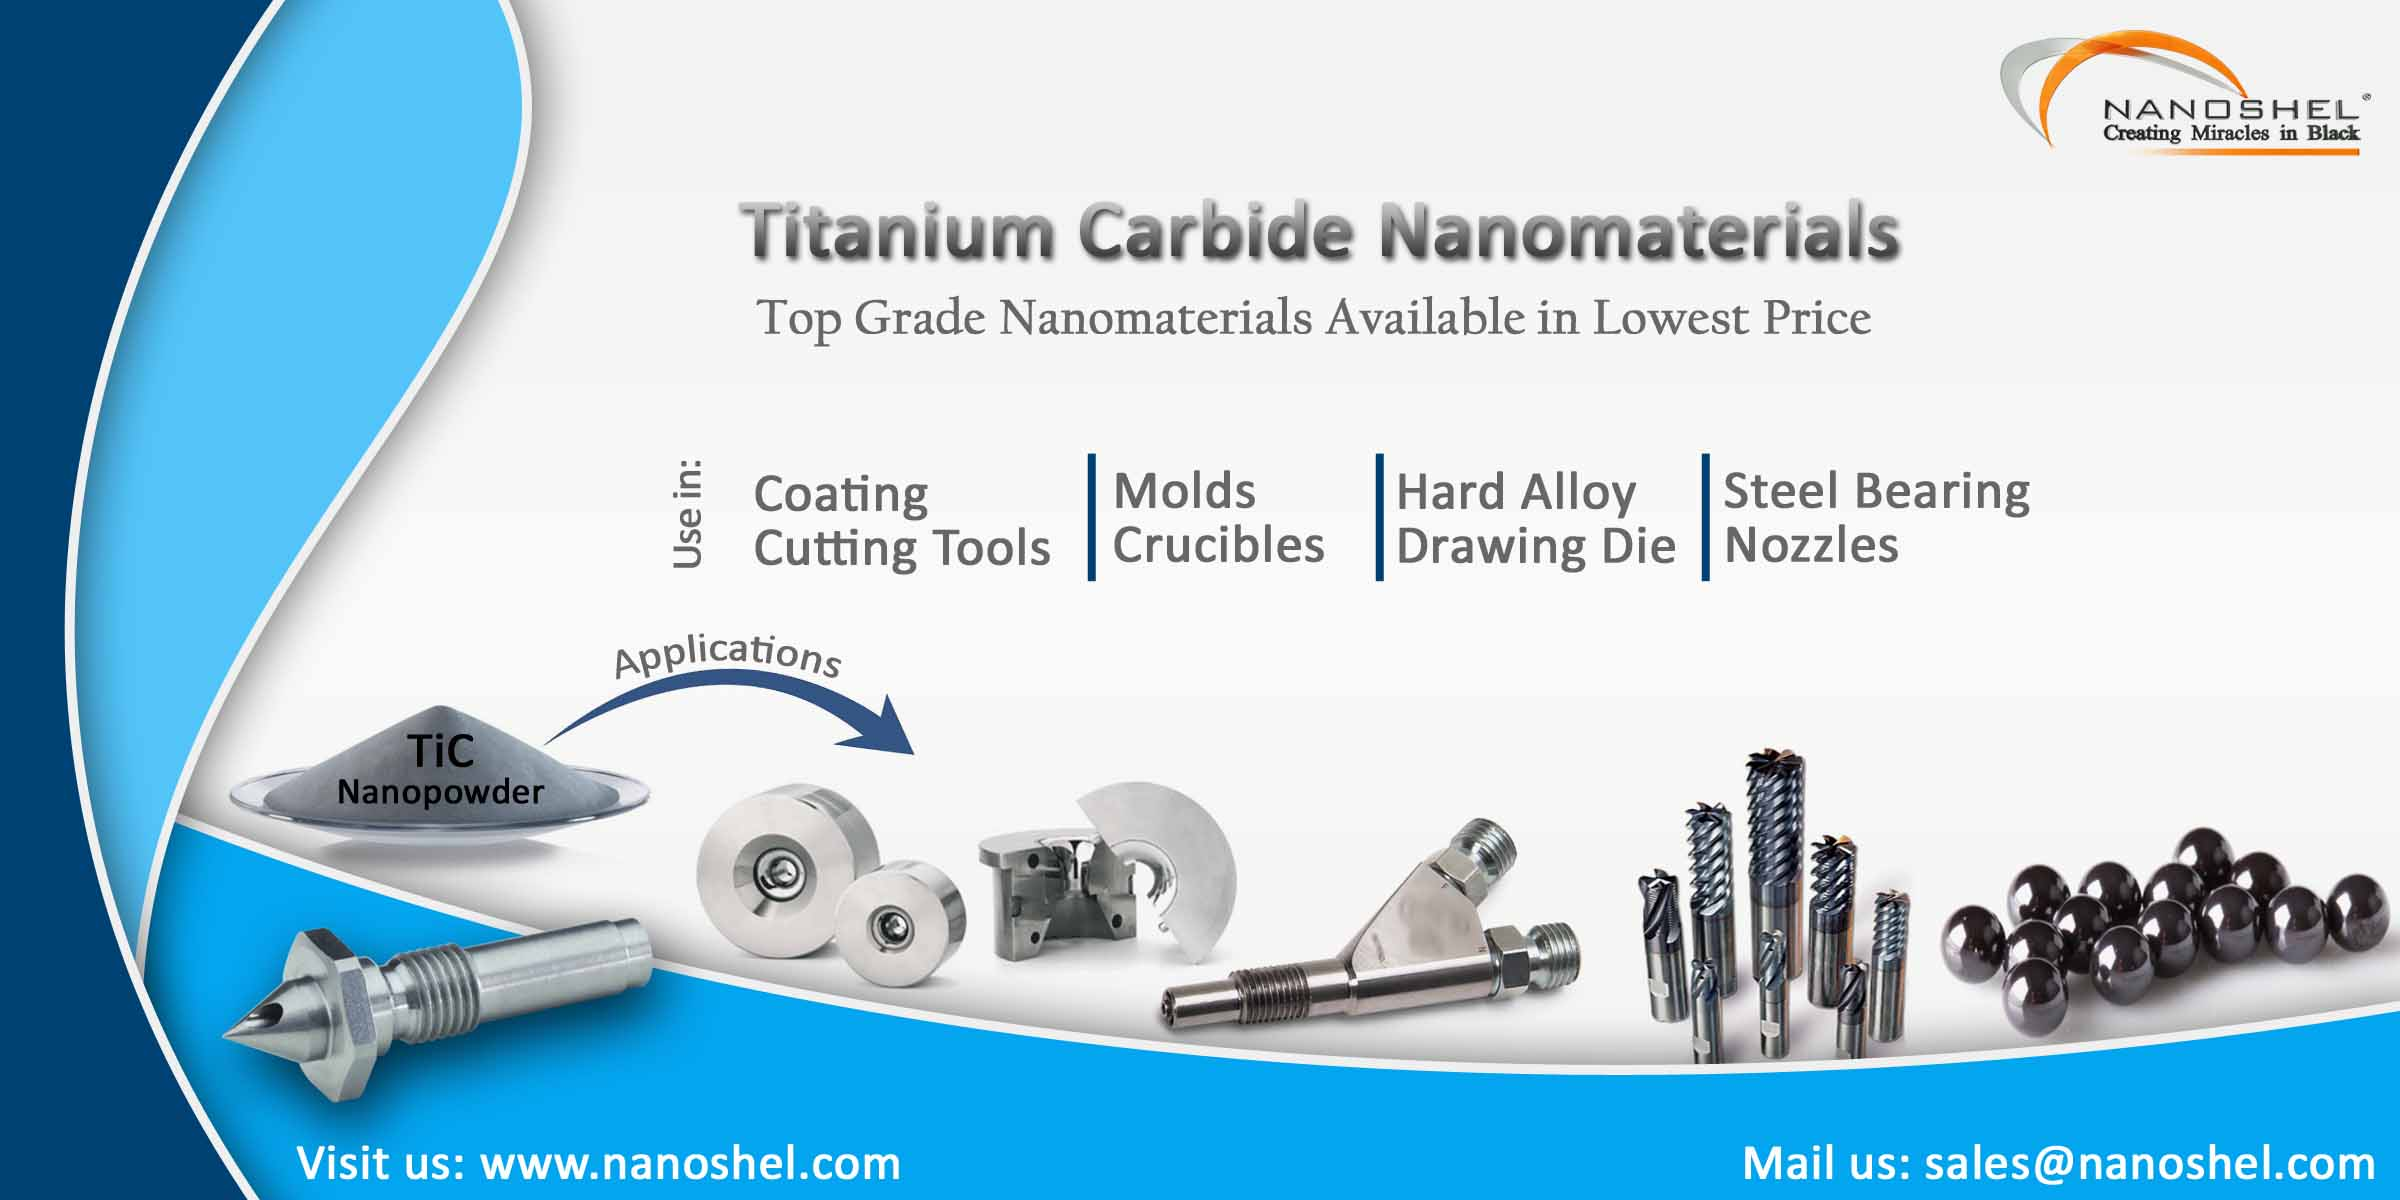 Titanium Carbide Nanoparticles